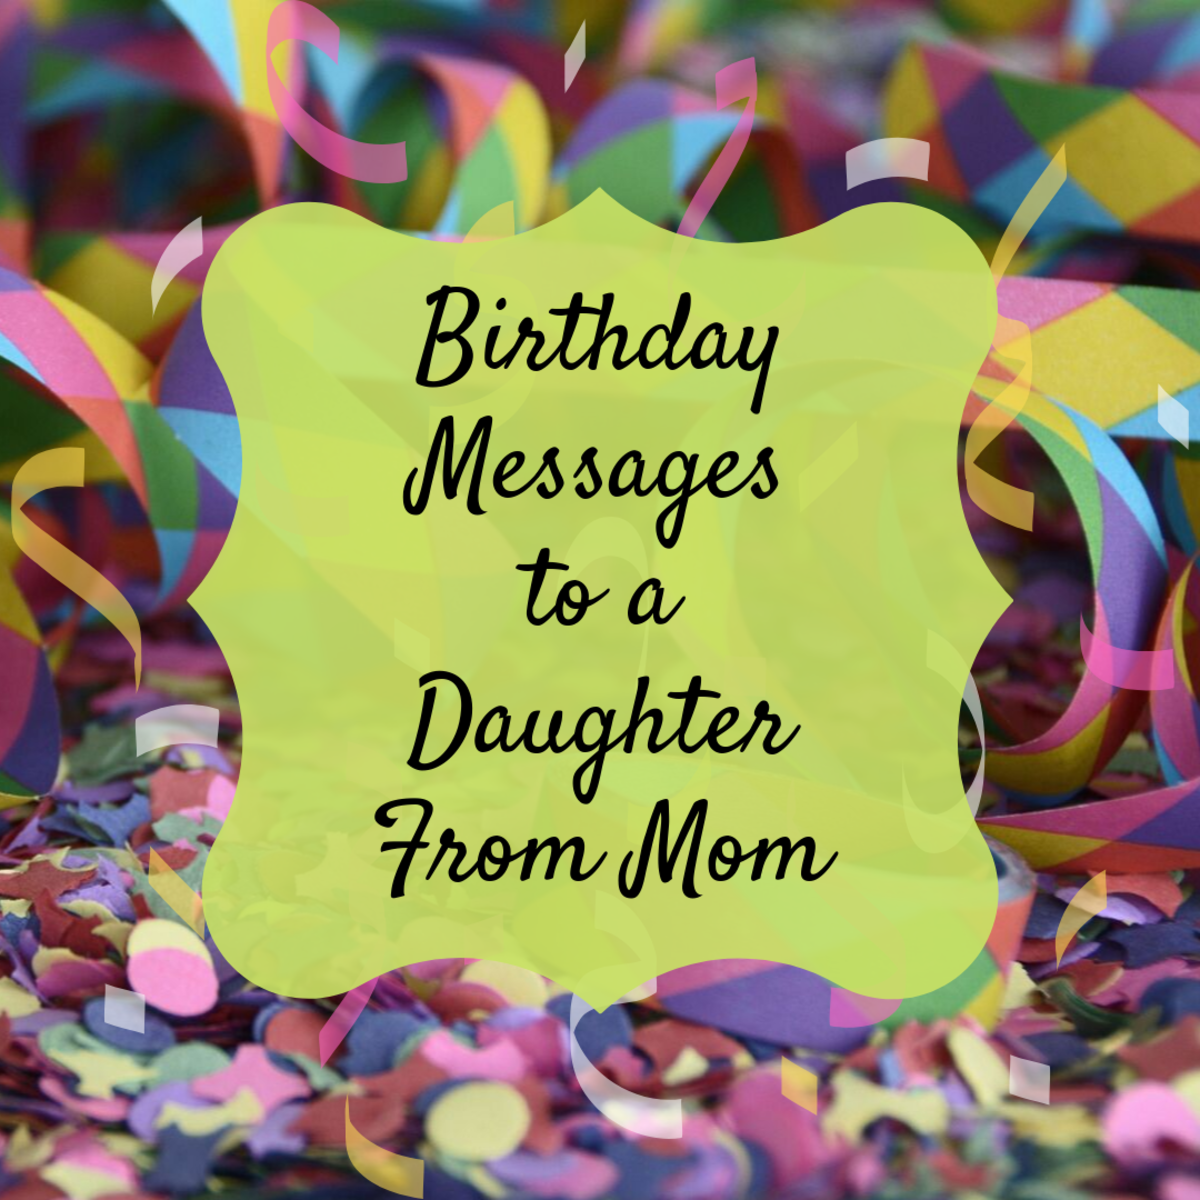 Swell Birthday Wishes Texts And Quotes For A Daughter From Mom Personalised Birthday Cards Paralily Jamesorg